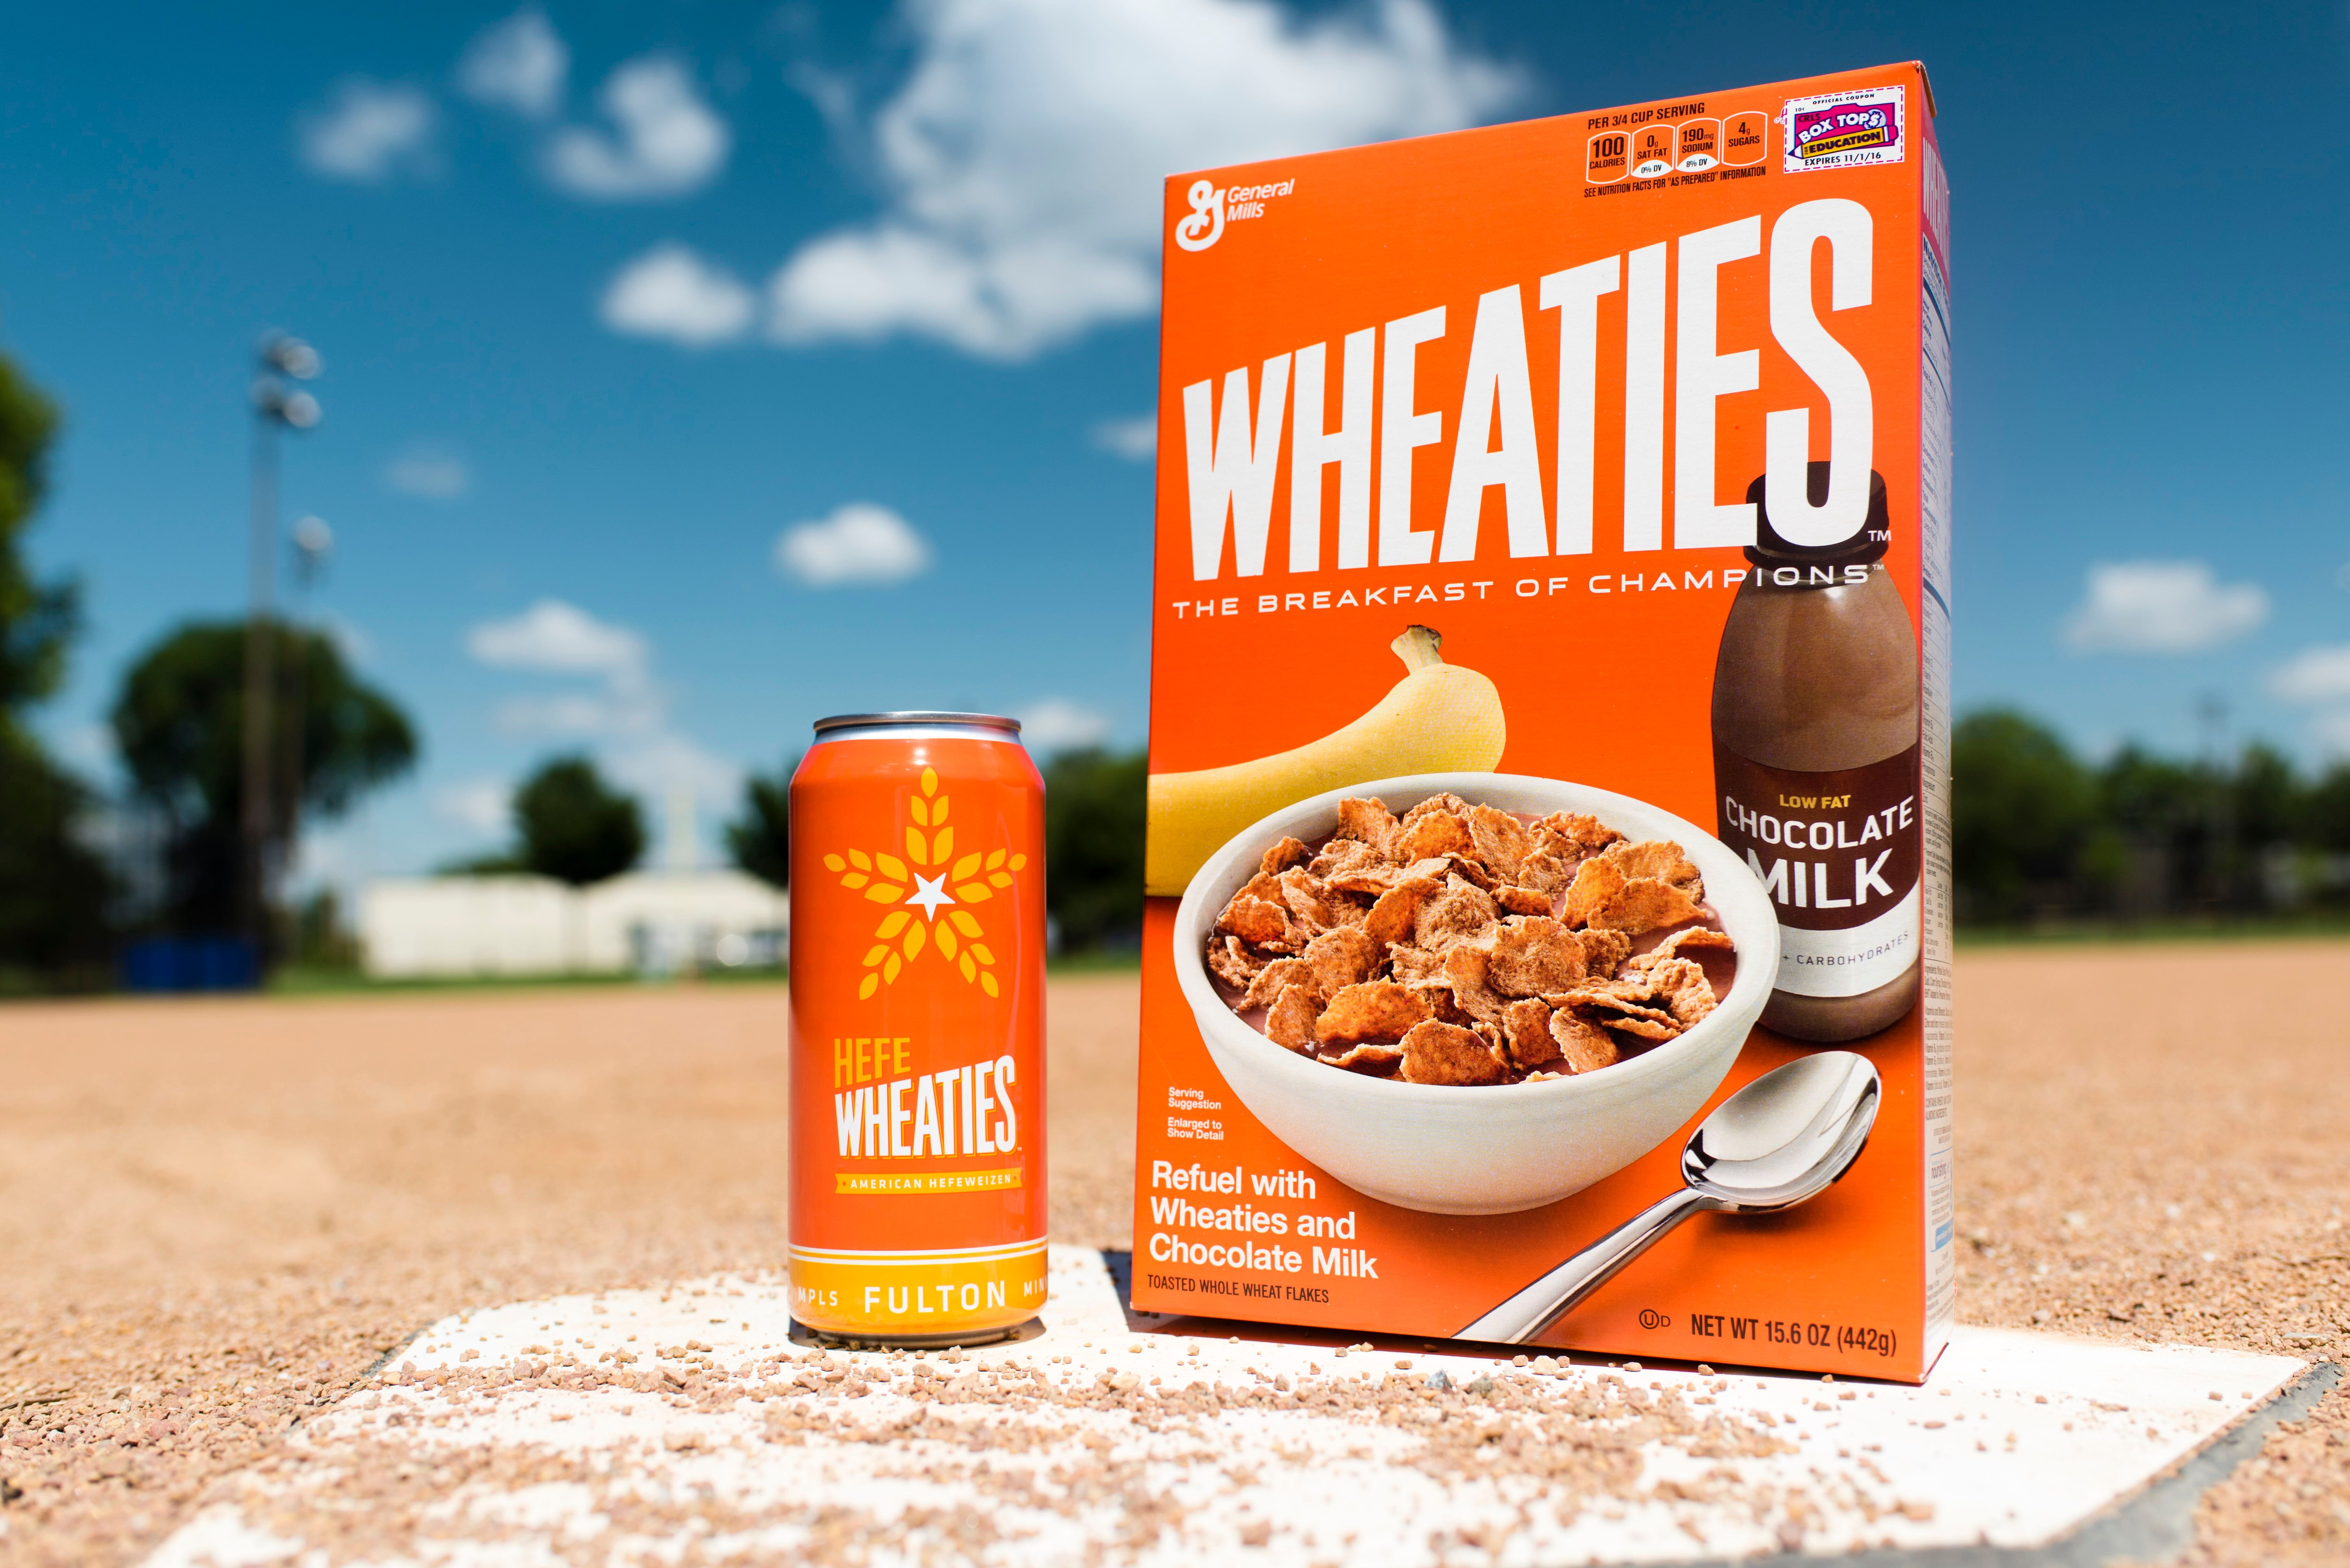 Box of Wheaties cereal and the limited-edition HefeWheaties beer.